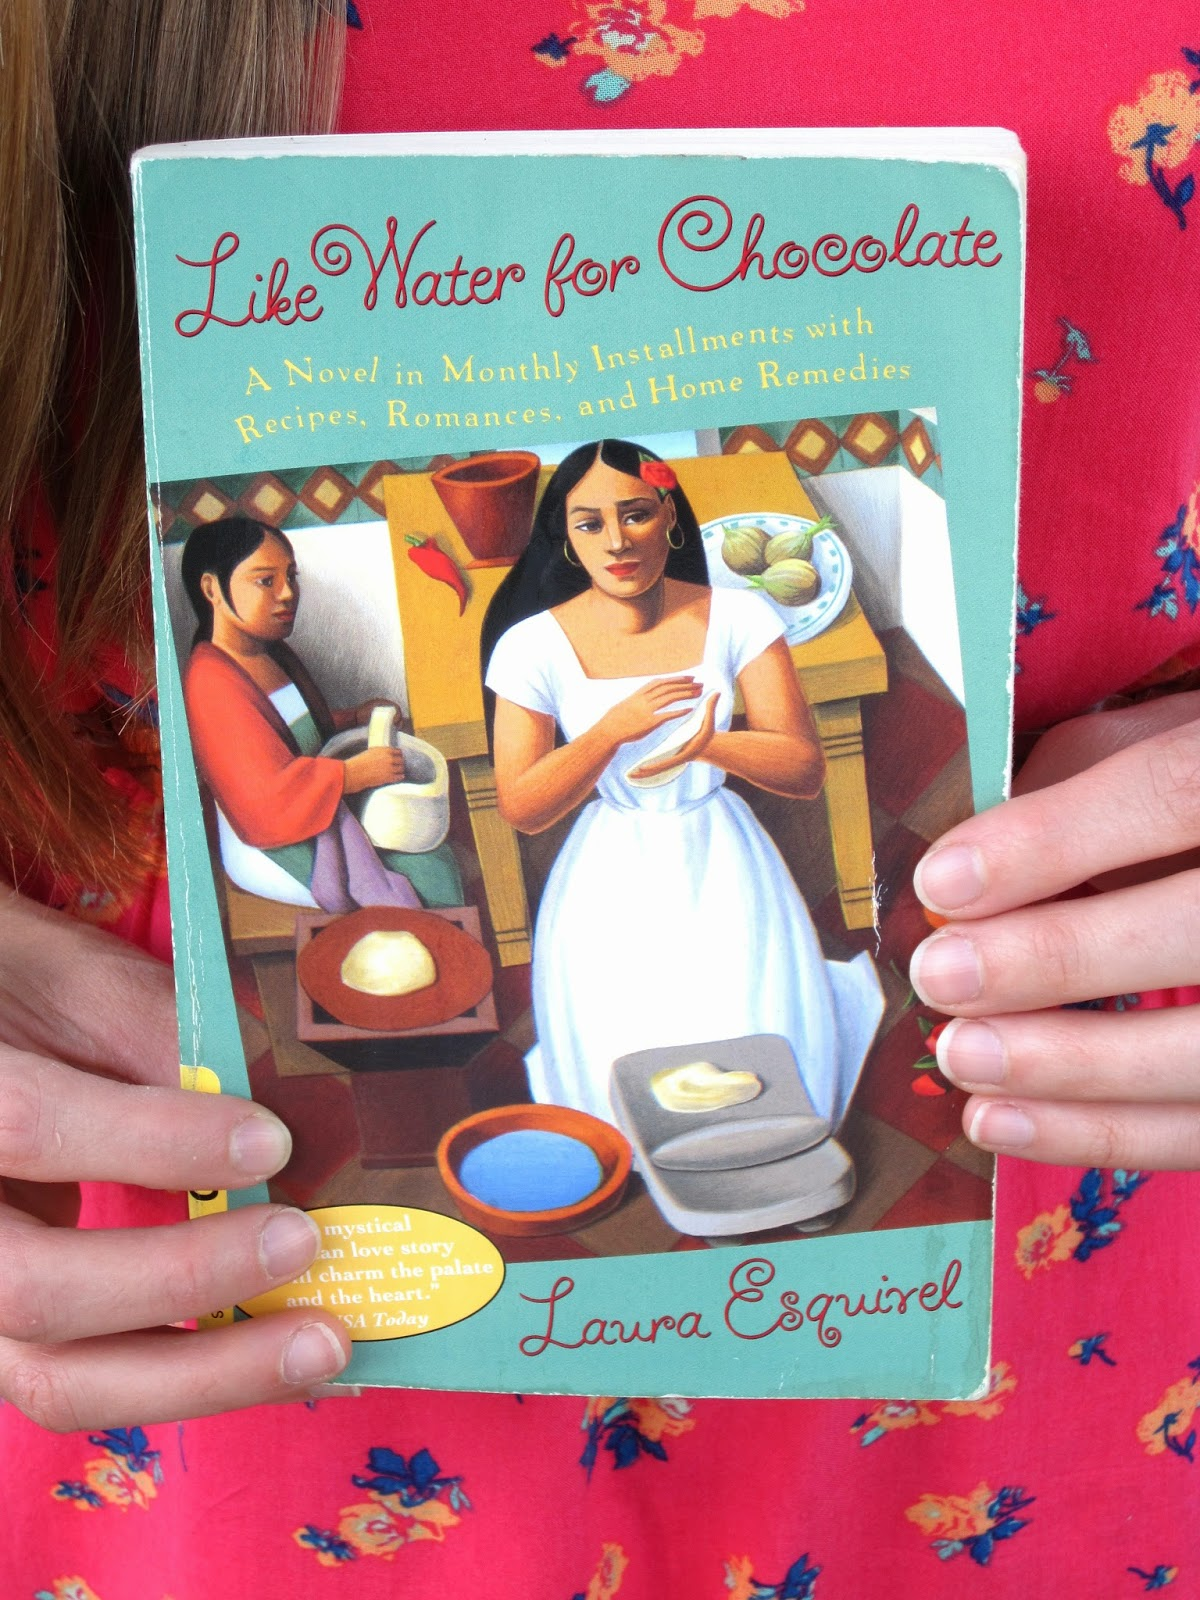 heroine jones: Review: Like Water for Chocolate by Laura Esquivel